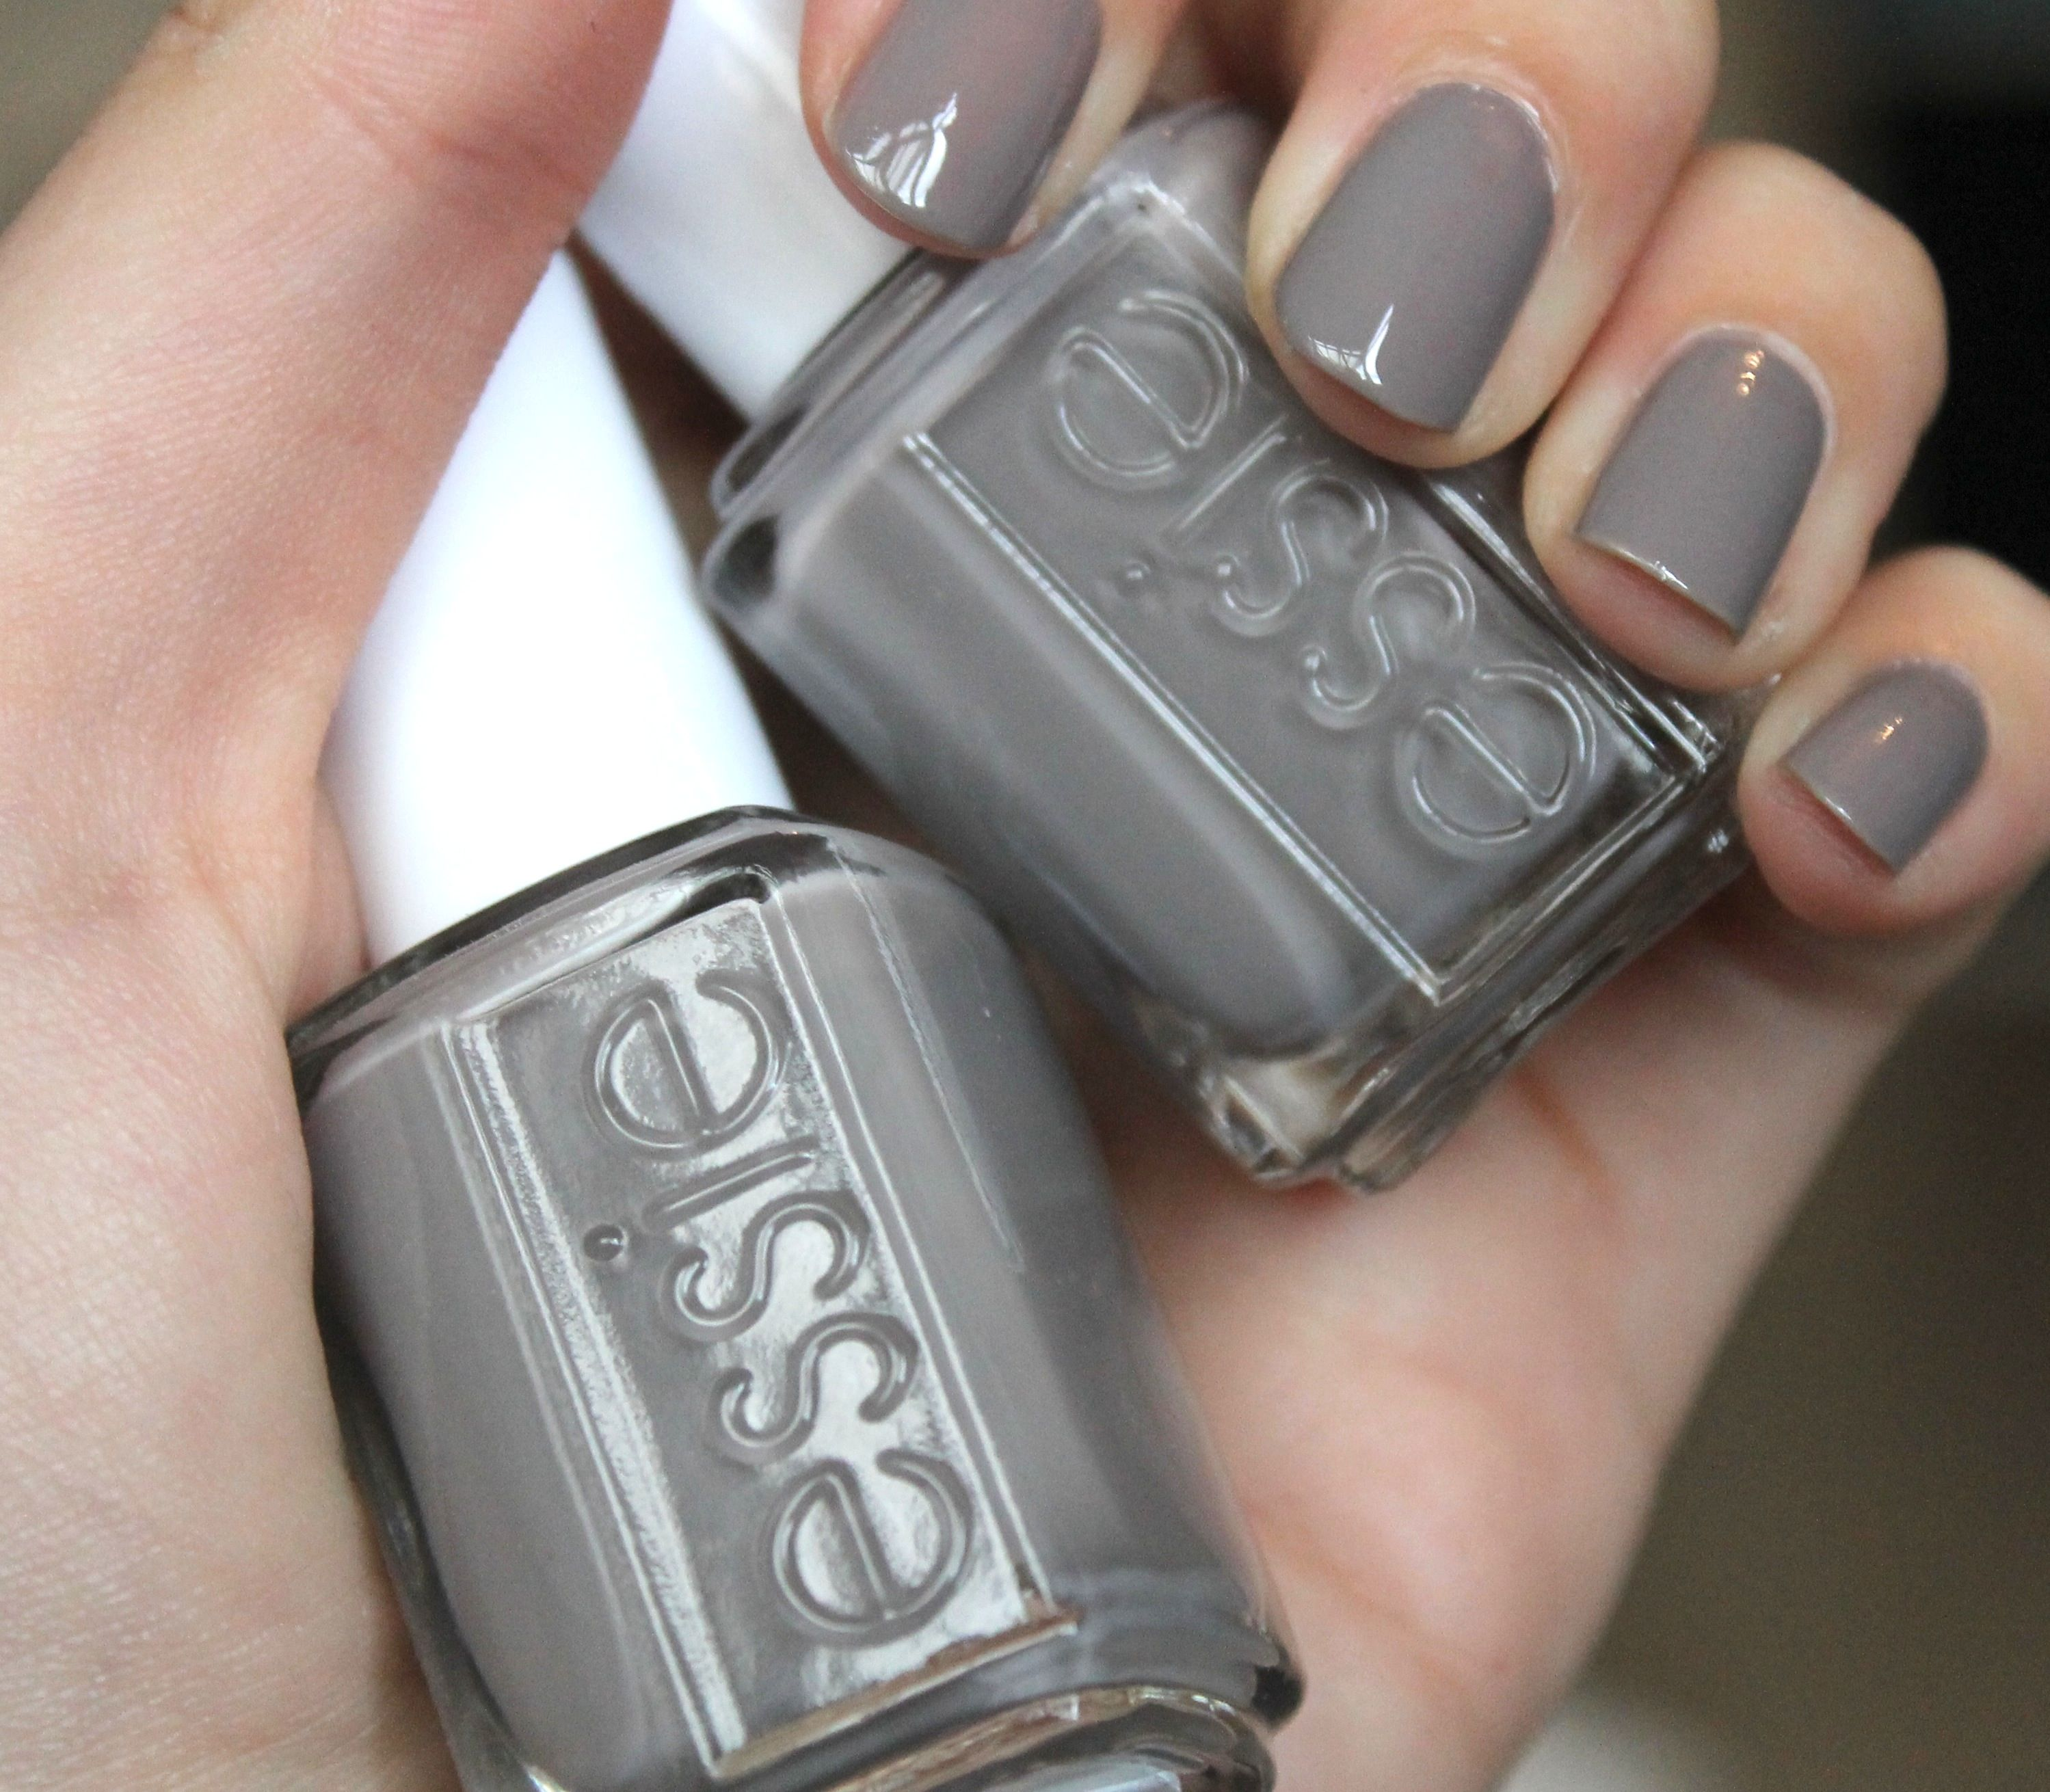 Essie Merino Cool Vs Chinchilly Google Search Essie Merino Cool Nail Polish Essie